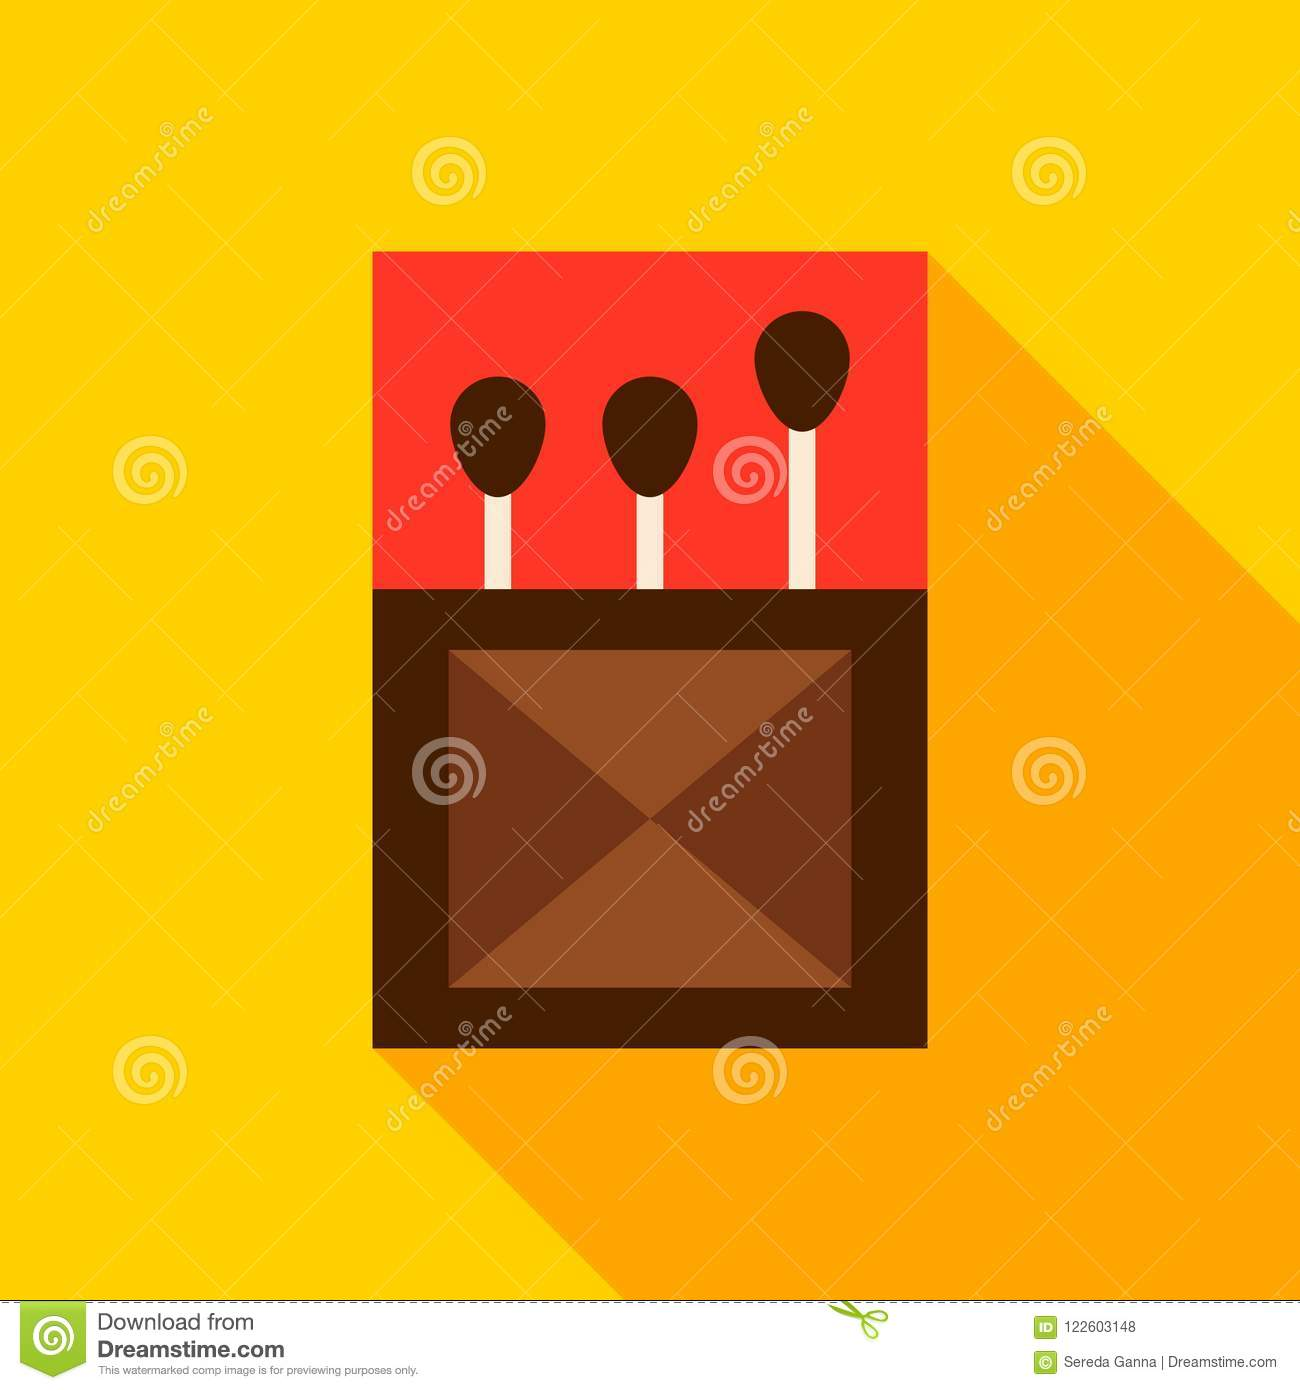 Box Of Matches Object Icon Stock Vector Illustration Of